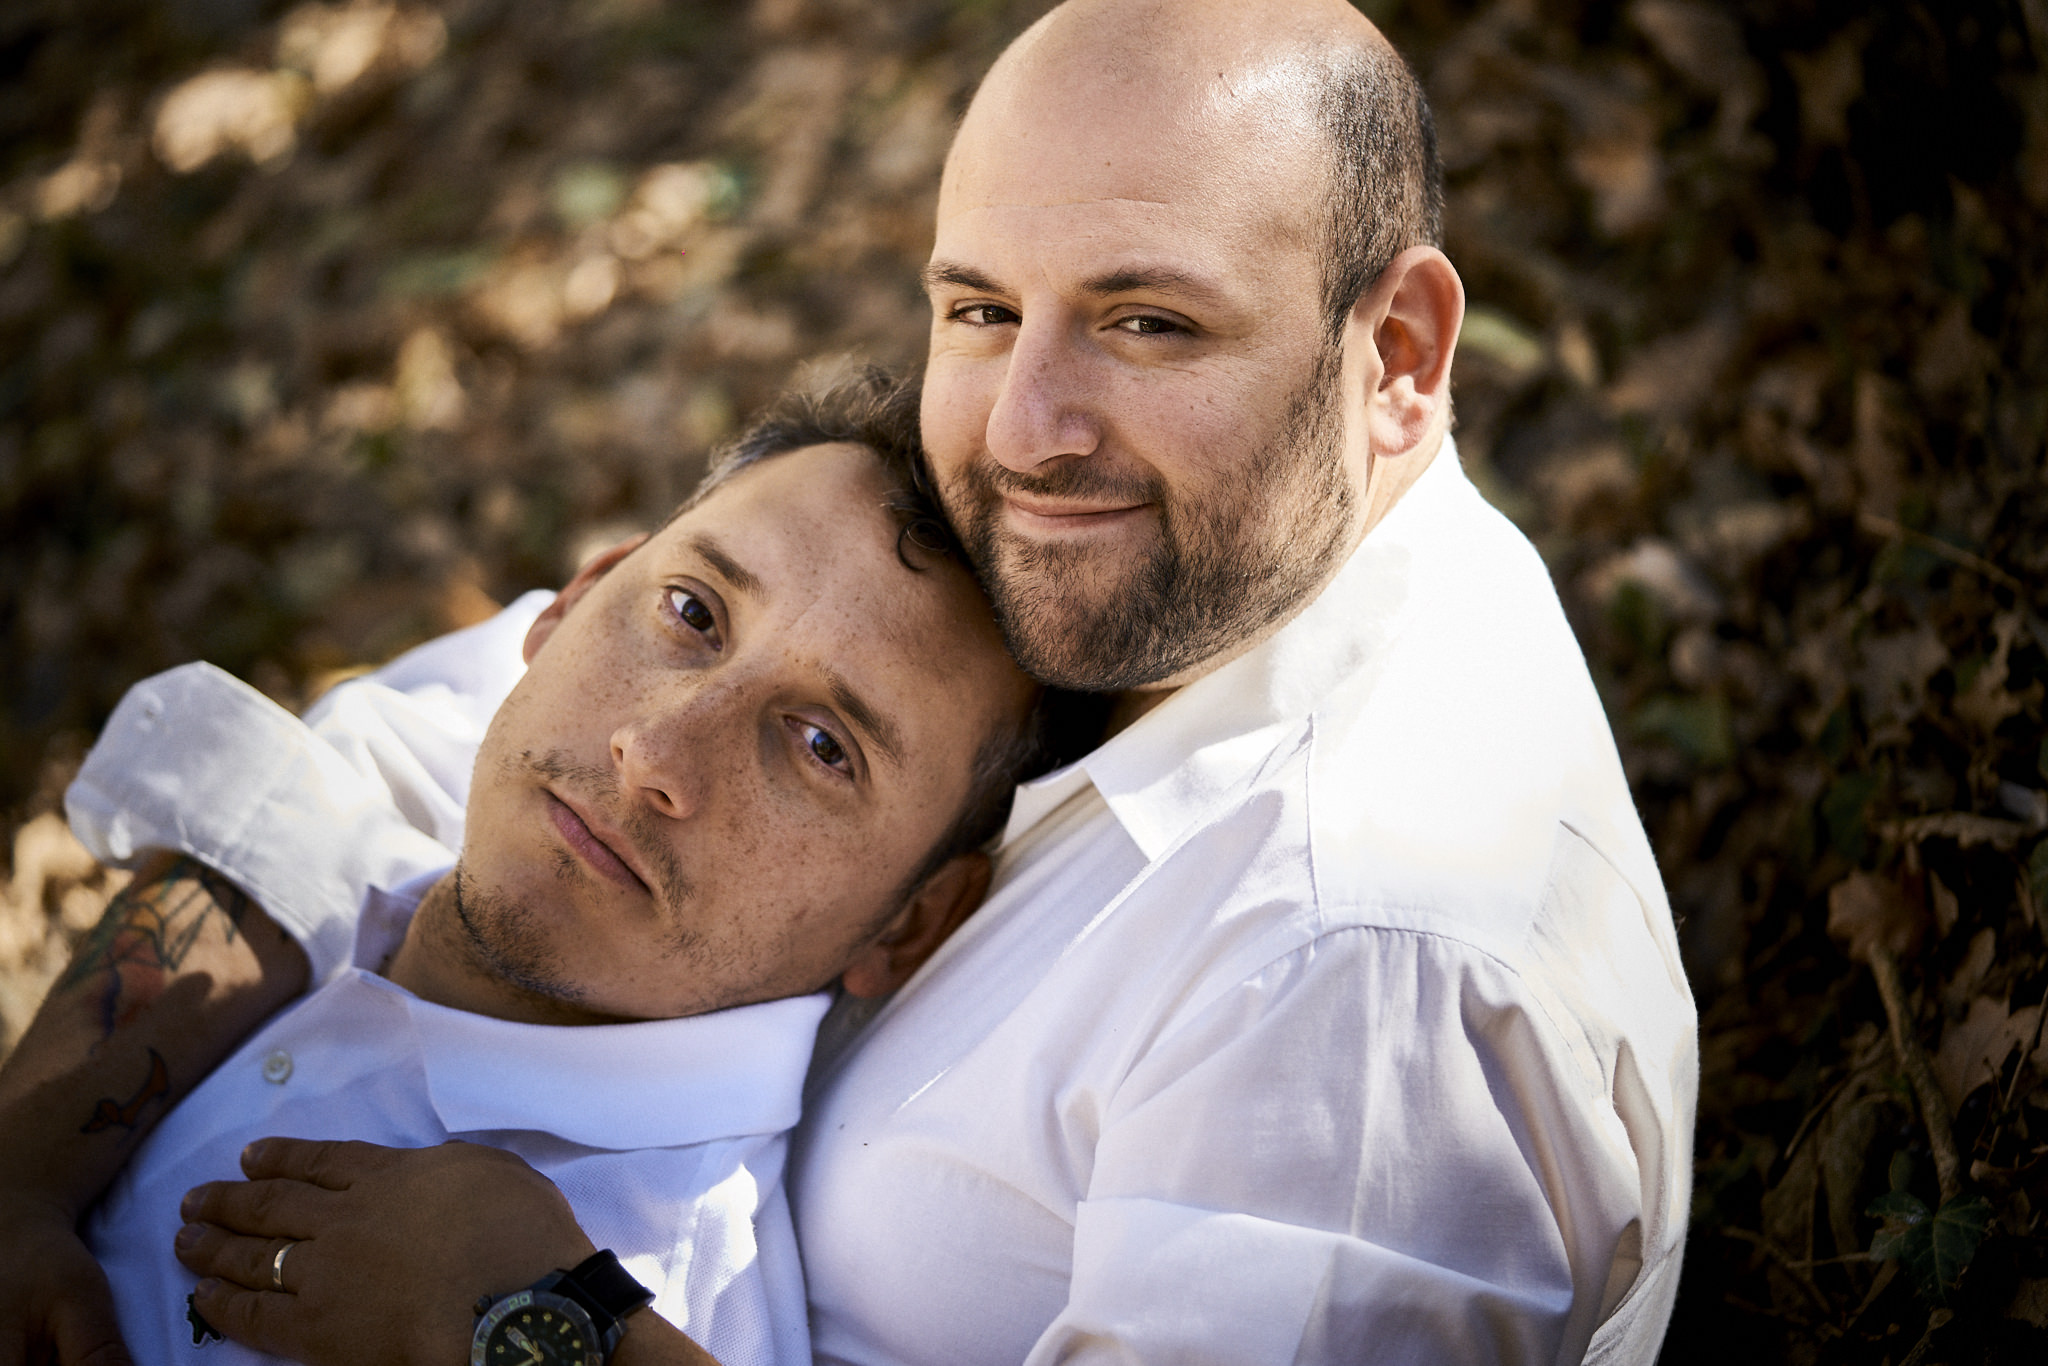 Fotografo de Bodas - Gay Couples - Wedding Photographer LME02382.jpg